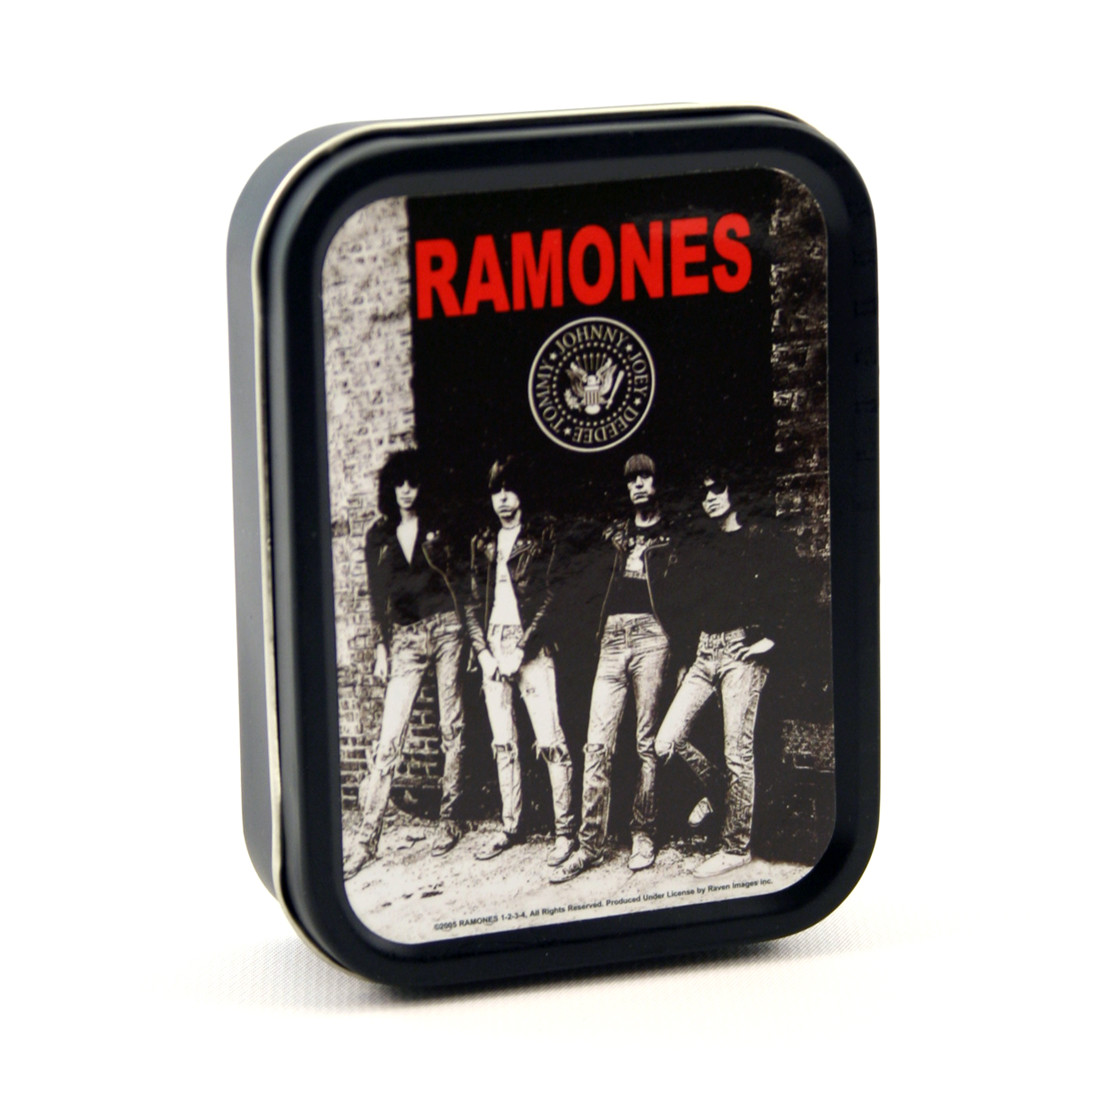 Ramones Stash Tin